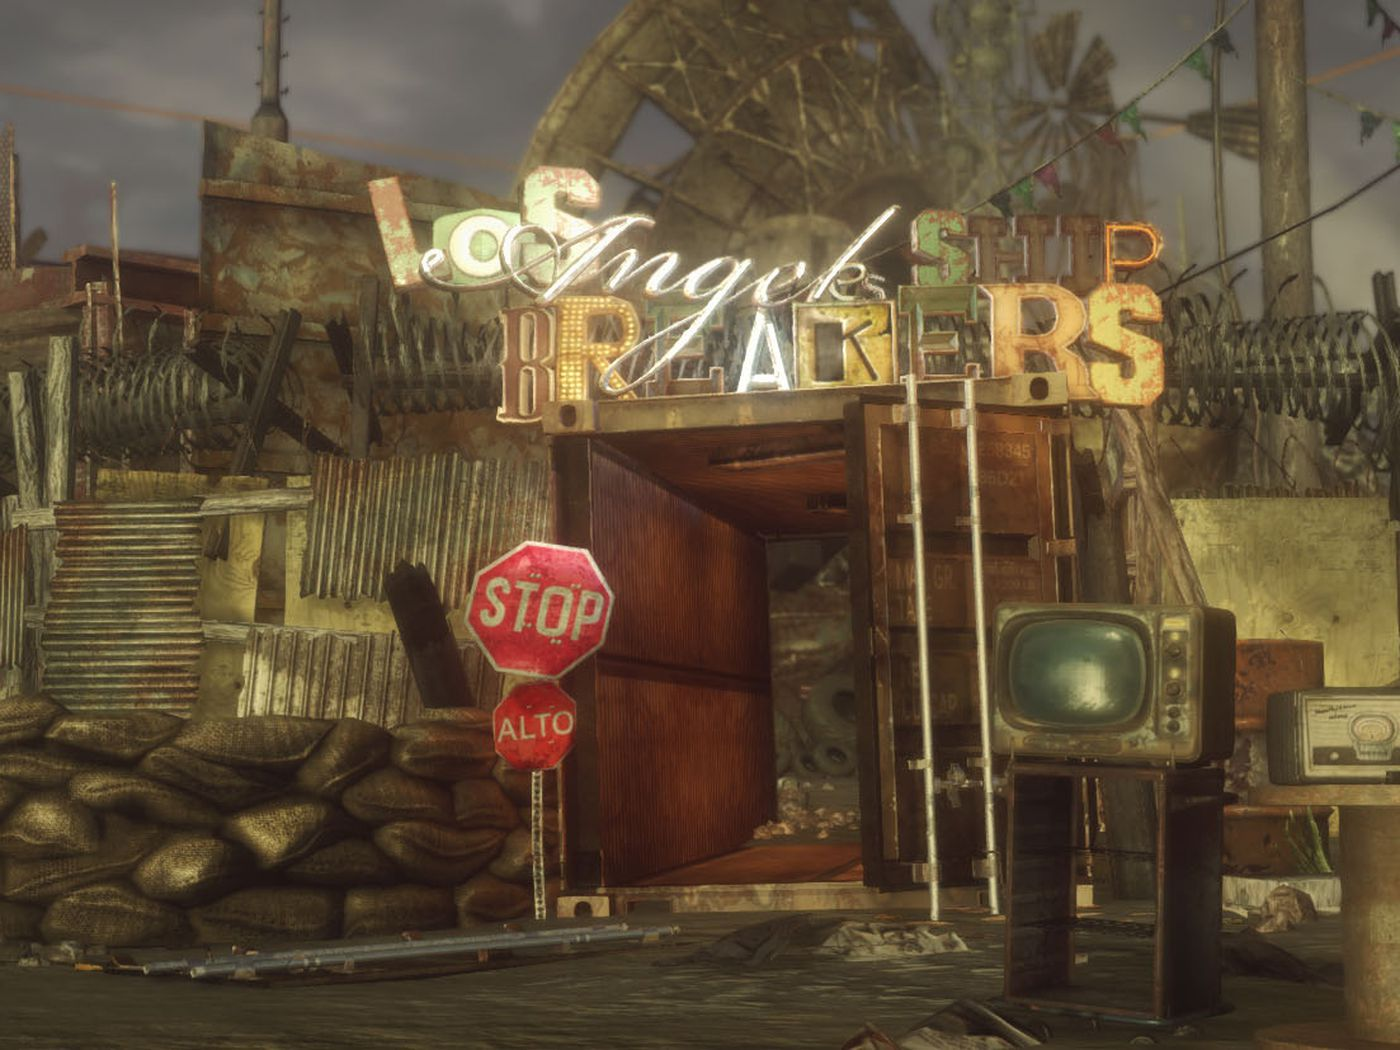 Fallout New Vegas mod 'Fallout New California' coming to PC in